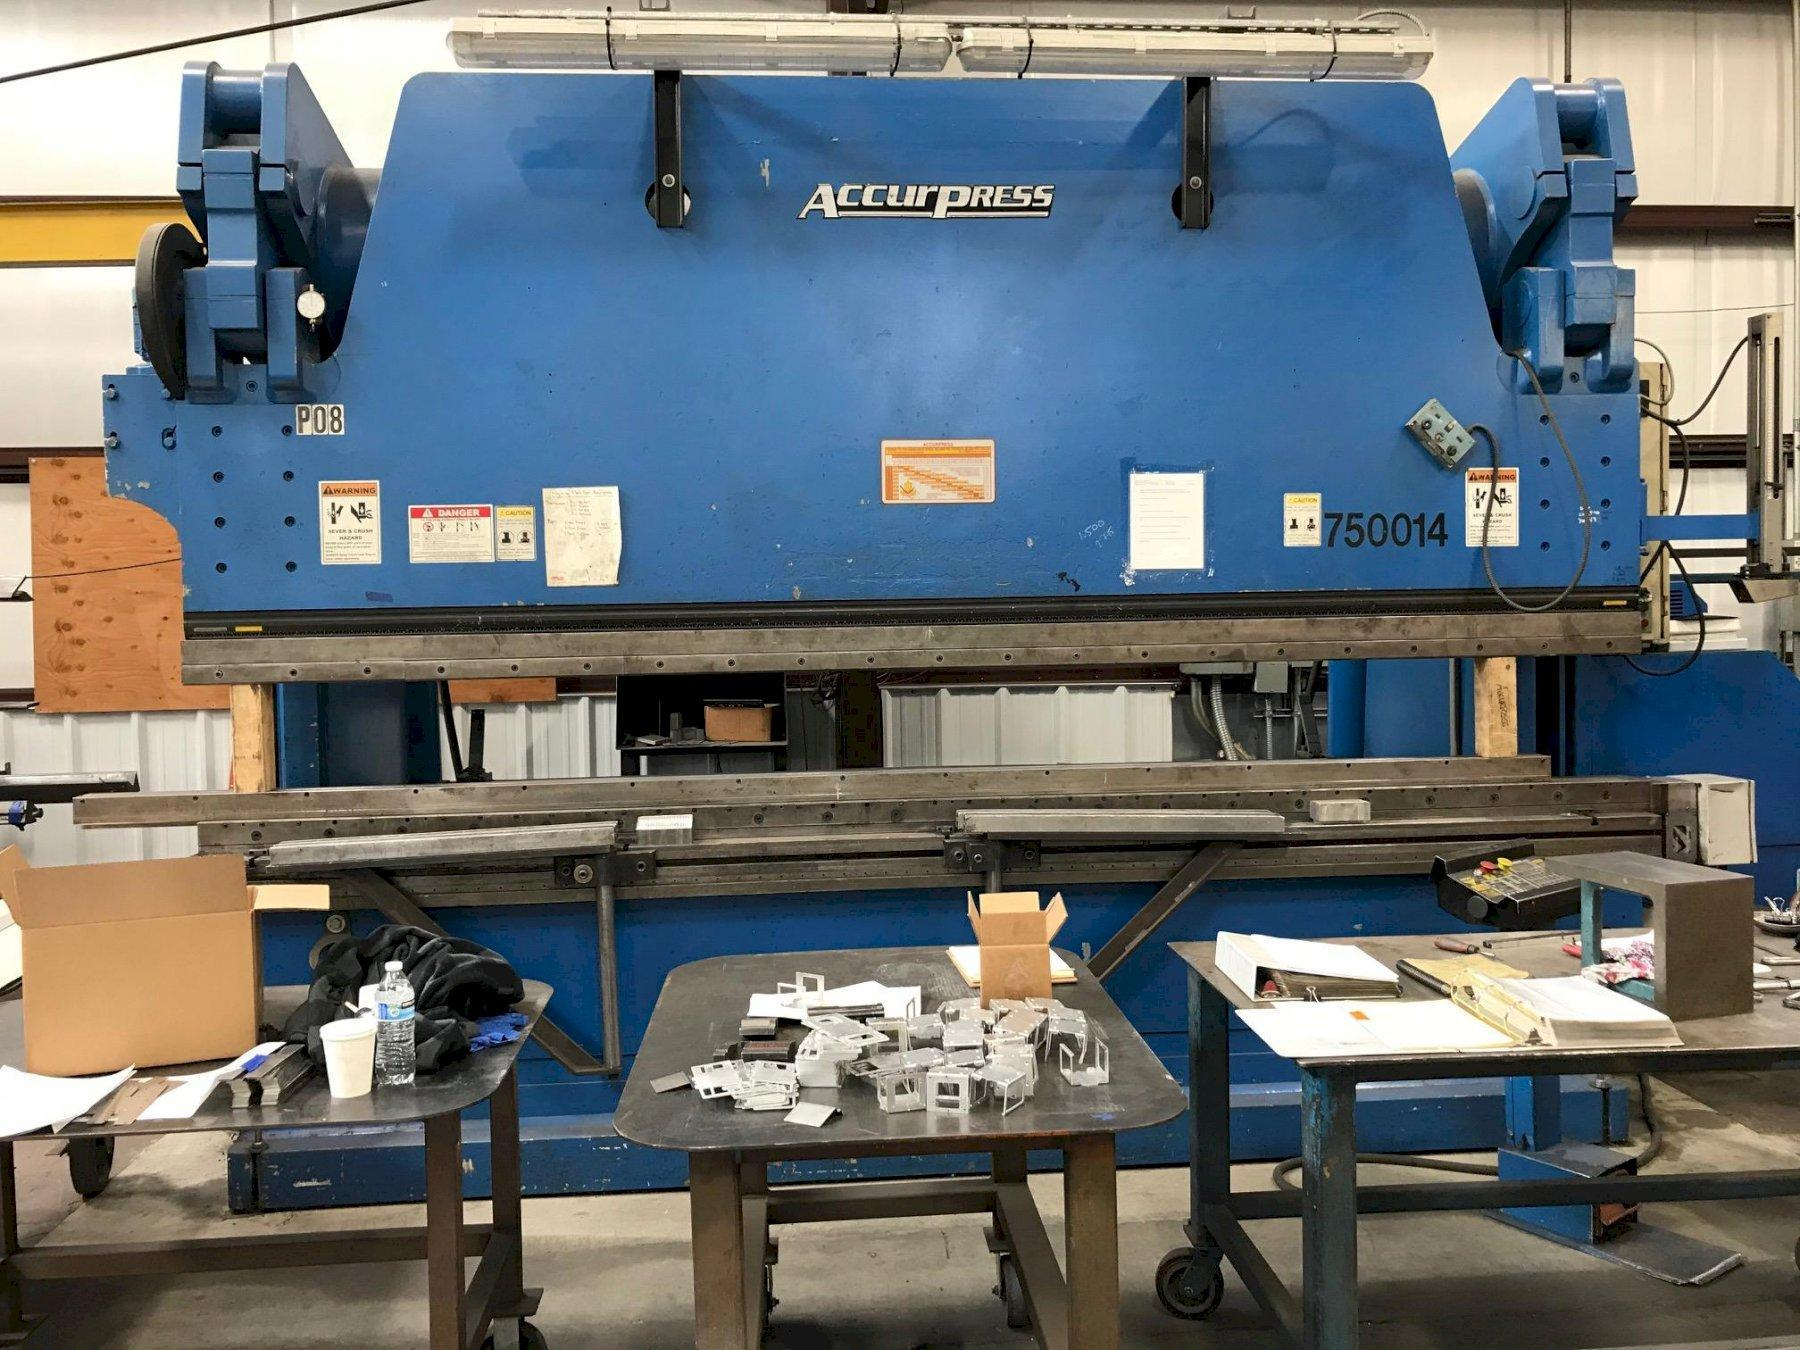 500 TON X 14' ACCURPRESS MODEL 750014, 2005, 6 AXIS ETS300 CNC CONTROL, LAZERGUARDS, FLUSH FLOOR, WILA CLAMP AND CROWNING